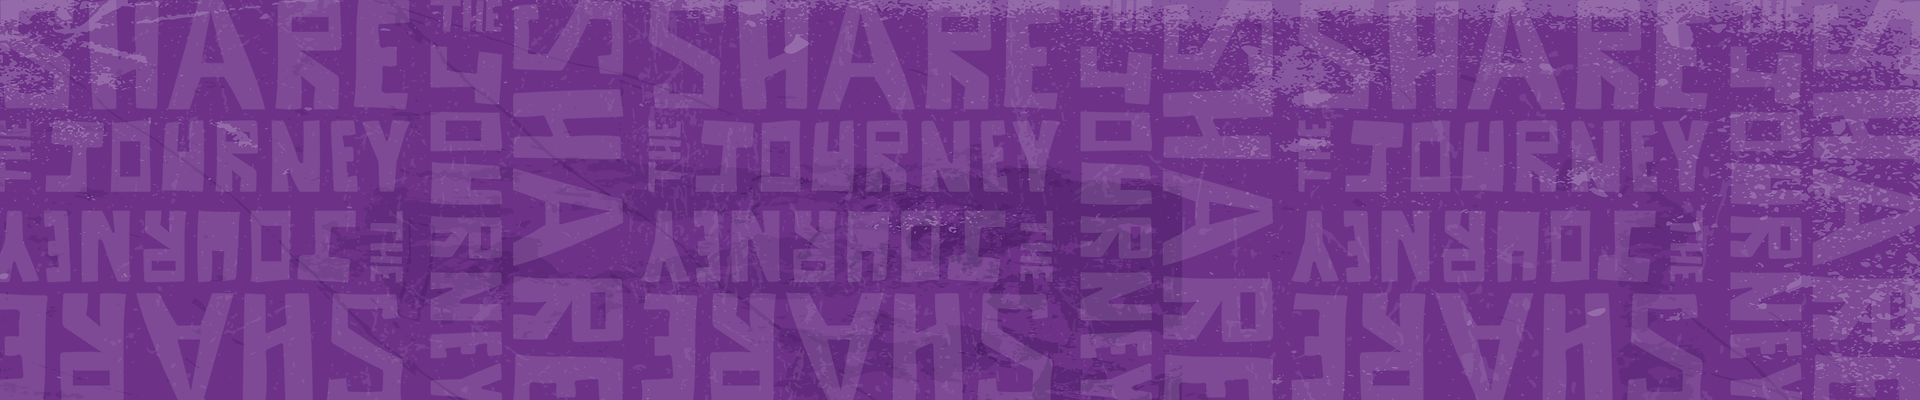 Share_the_Journey_3.png